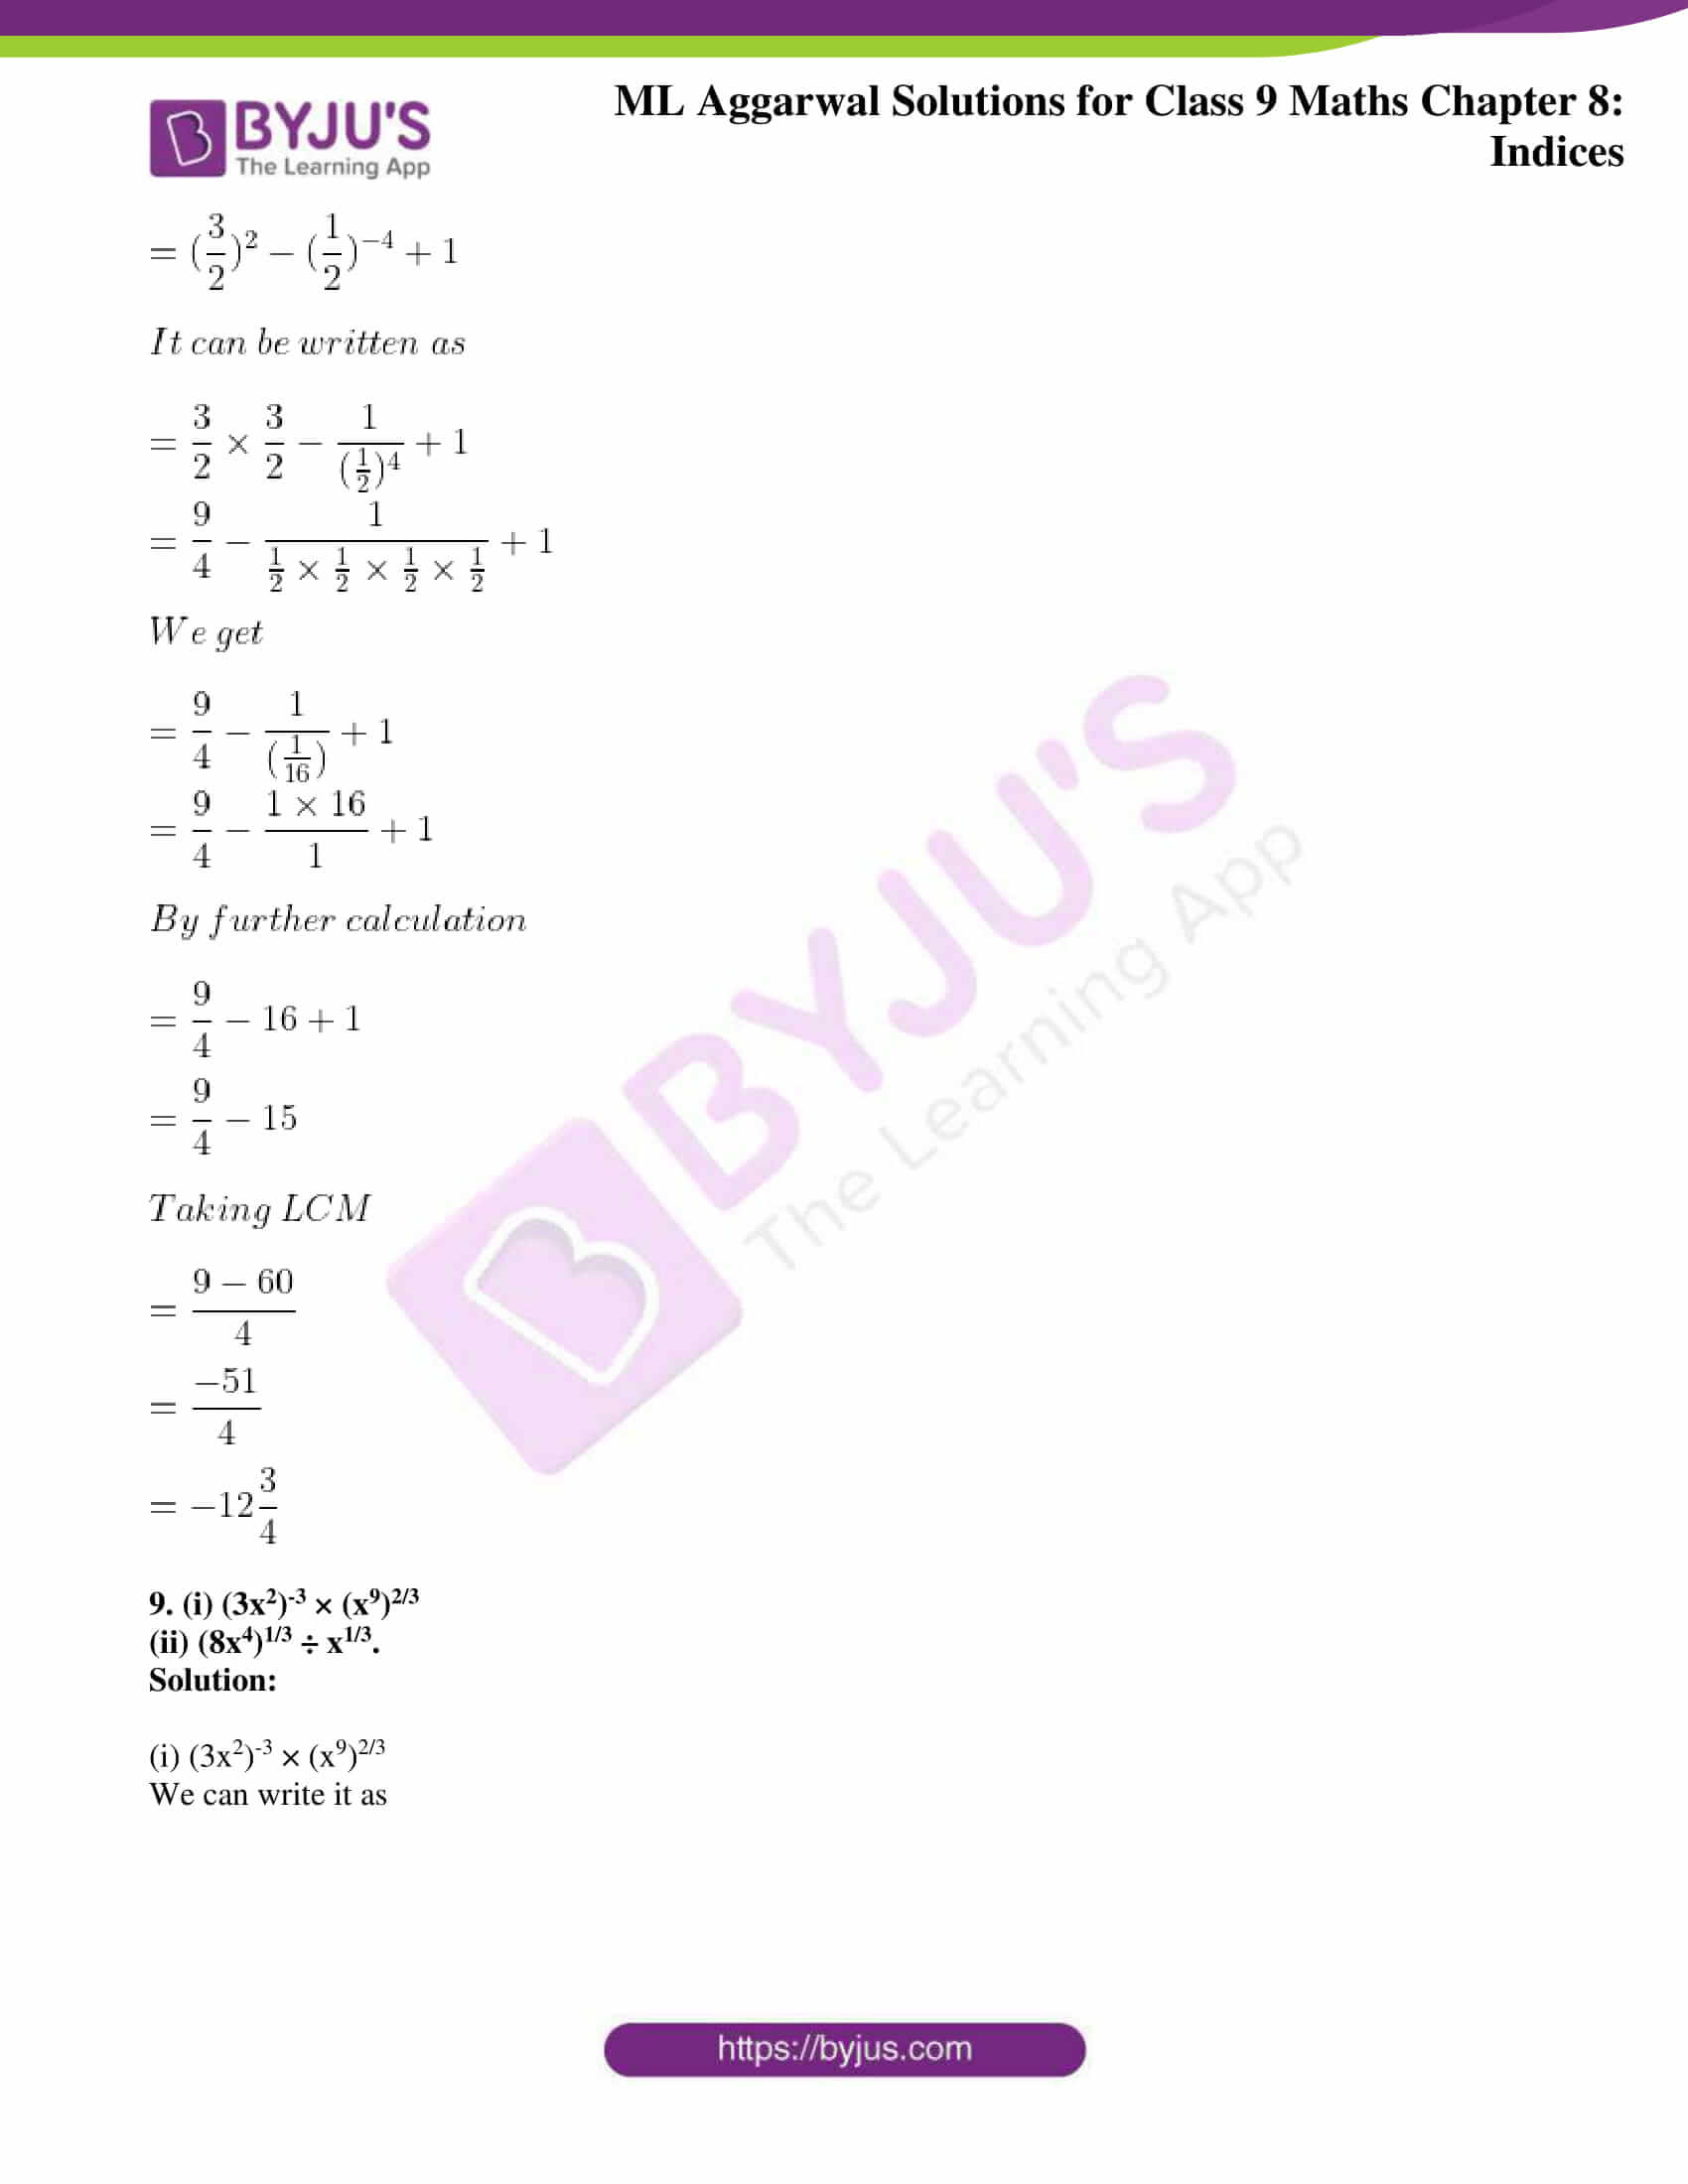 ml aggarwal solutions for class 9 maths chapter 8 07